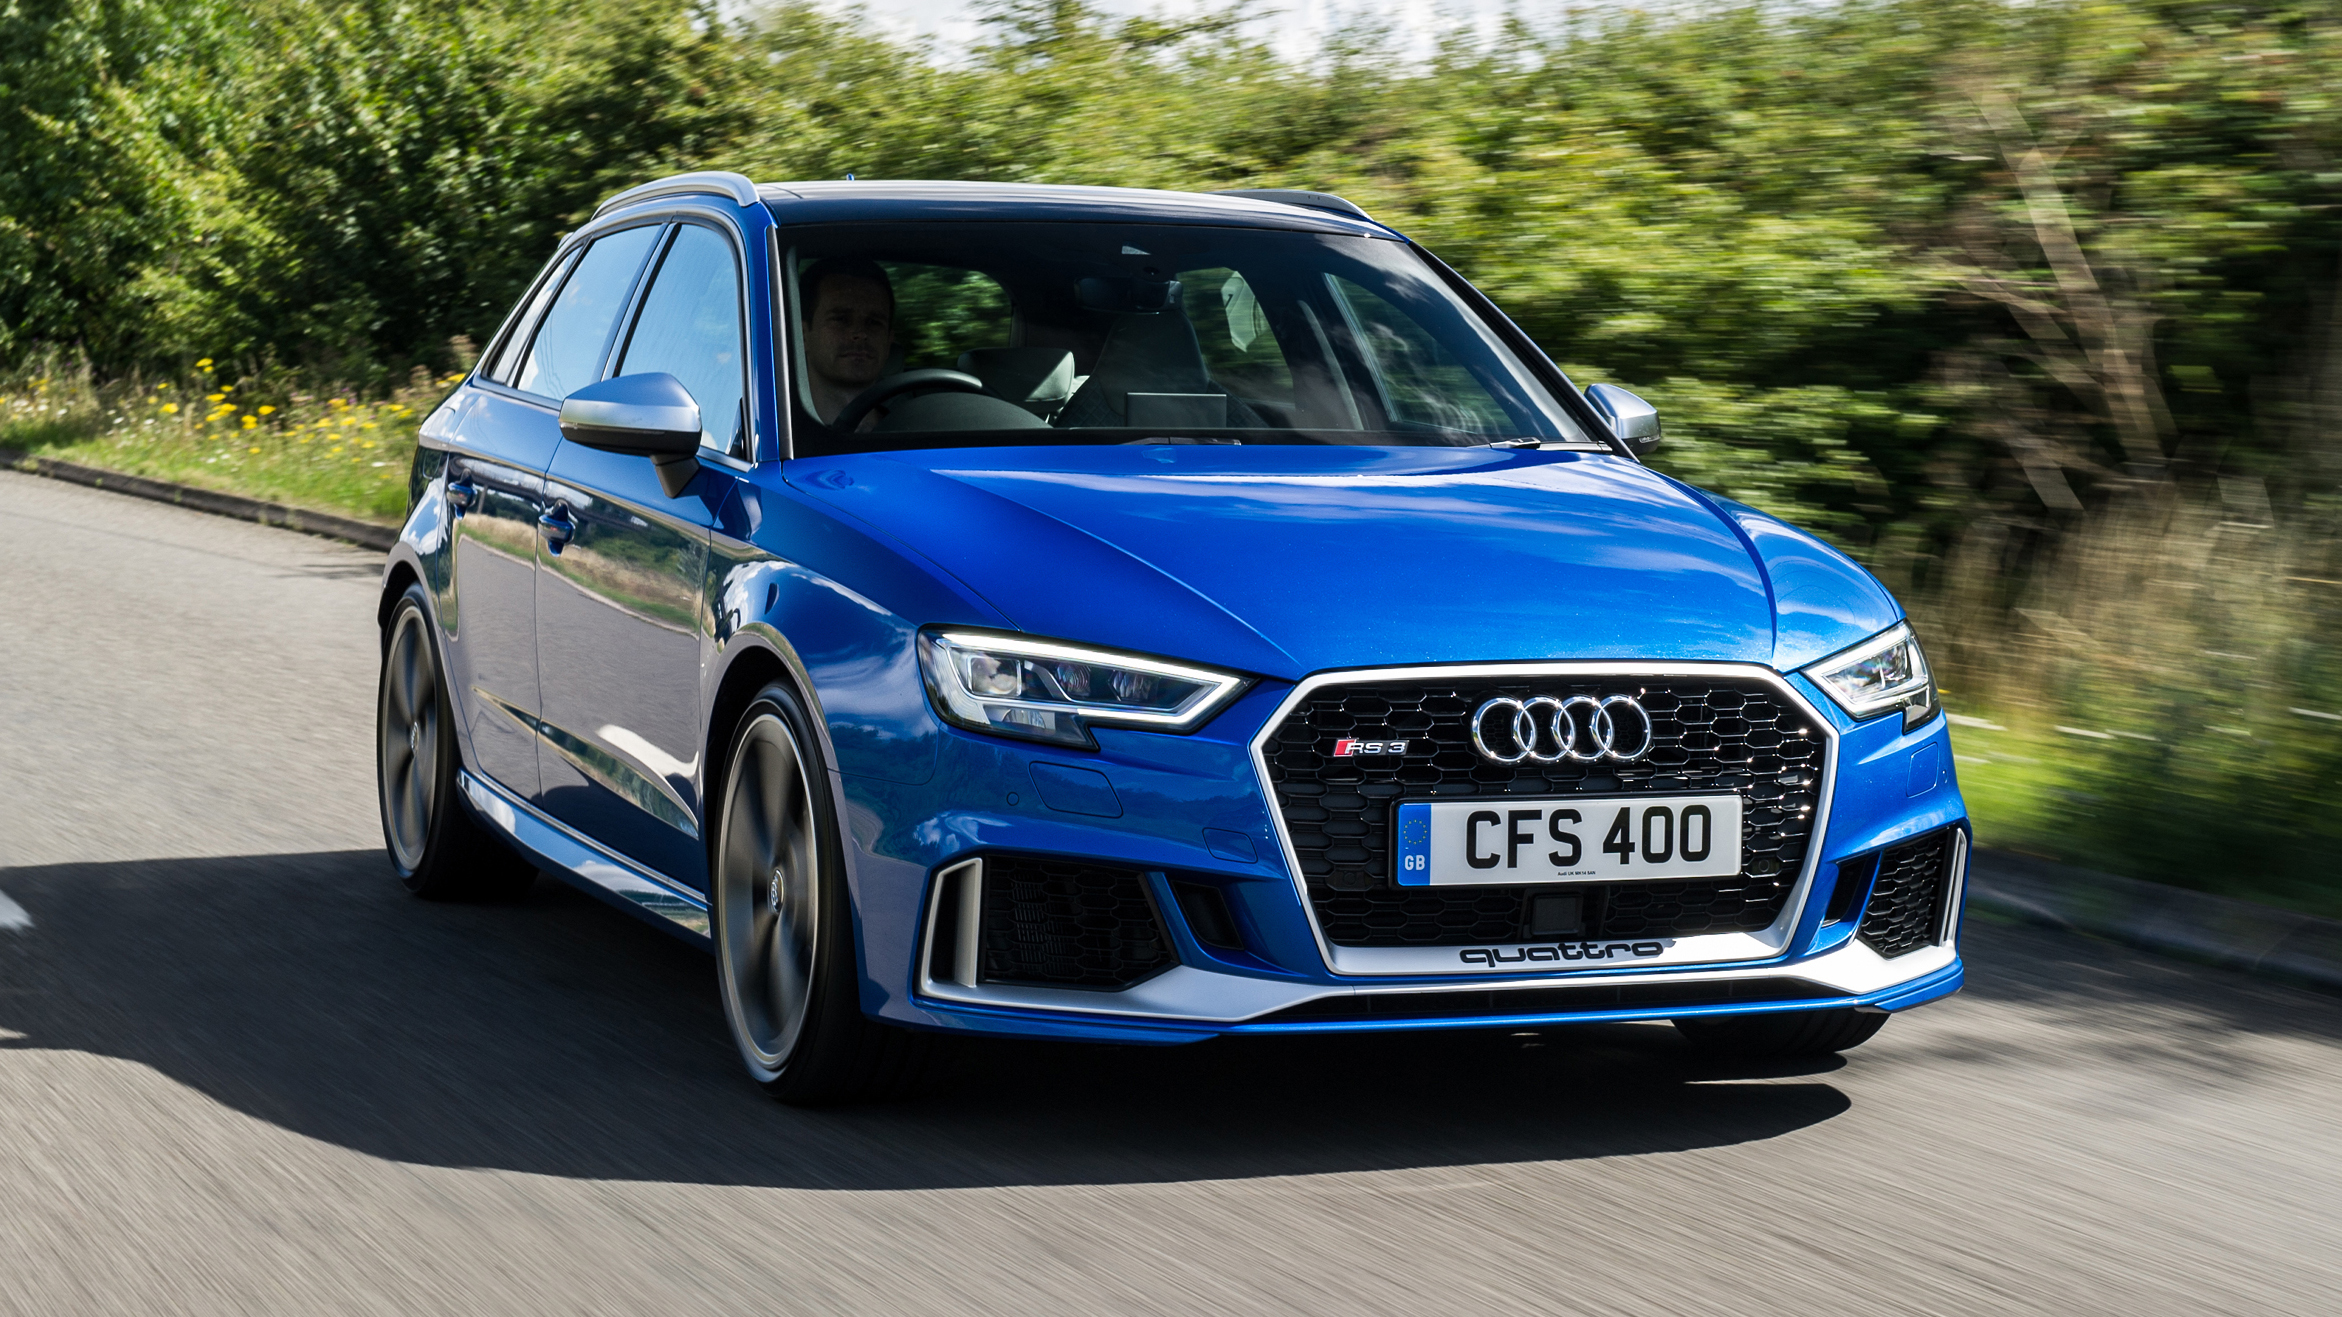 Audi RS3 Sportback review: UK test of new 395bhp hatch (2017